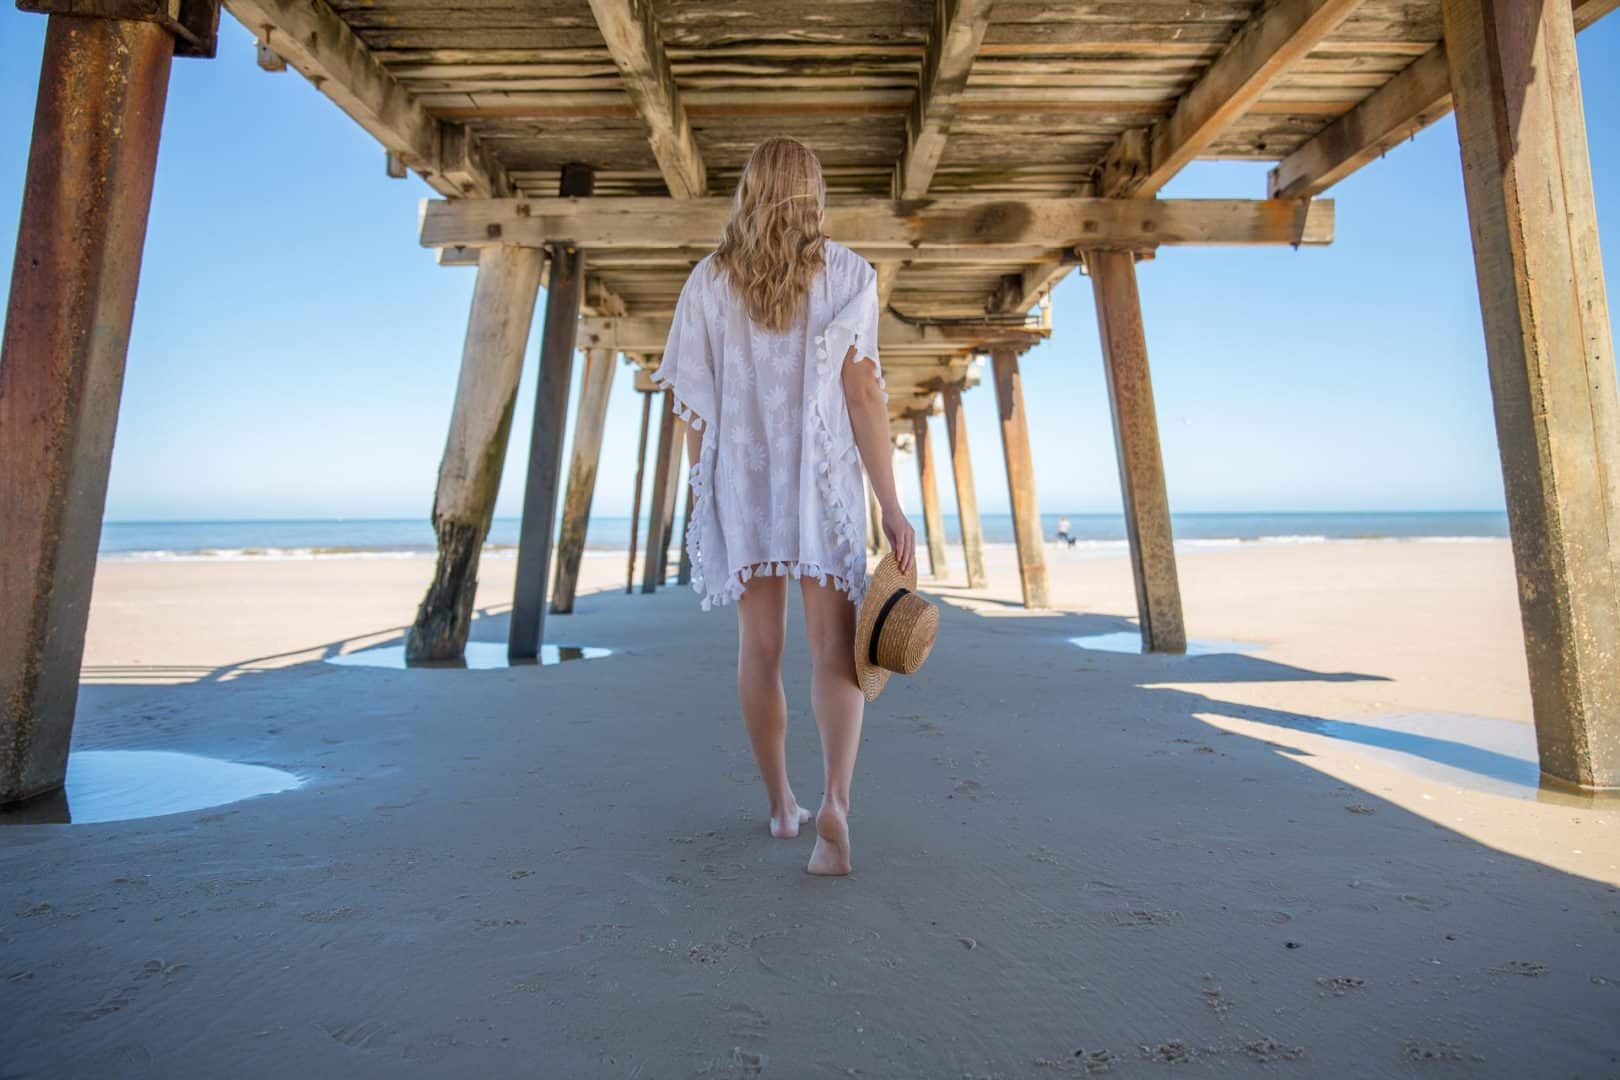 Five benefits of spending time outdoors - Feeling down? Try going for a walk on the beach, Australian Outdoor Living.